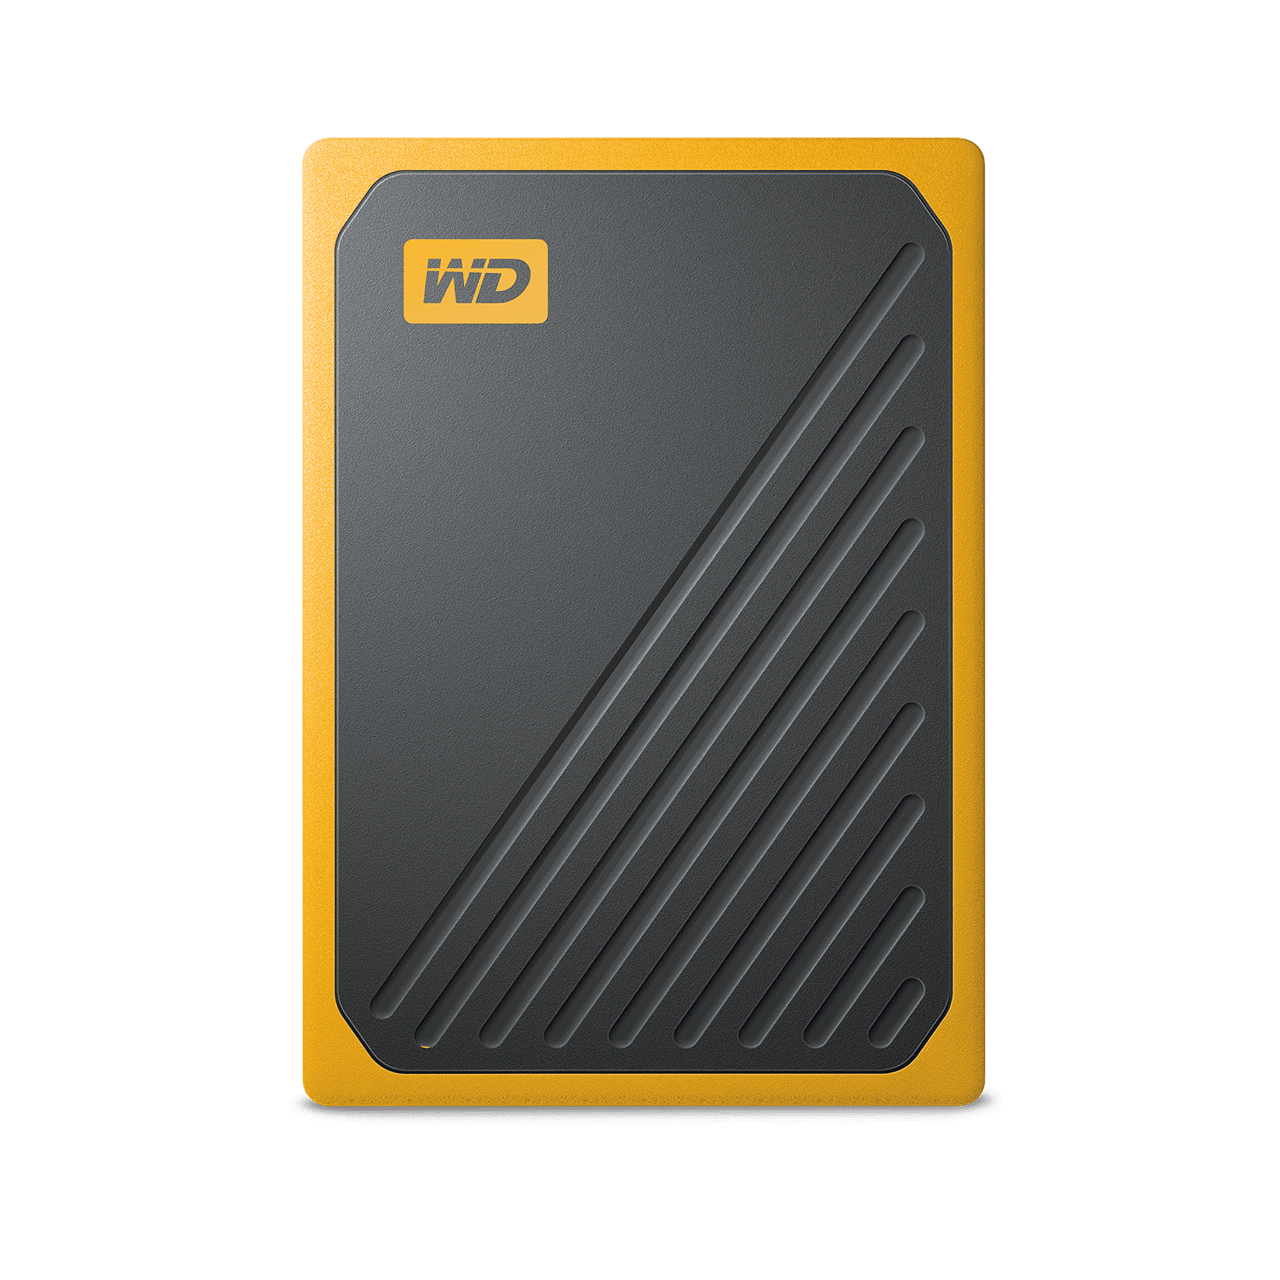 Sandisk My Passport Go 2000 GB Negro, Naranja